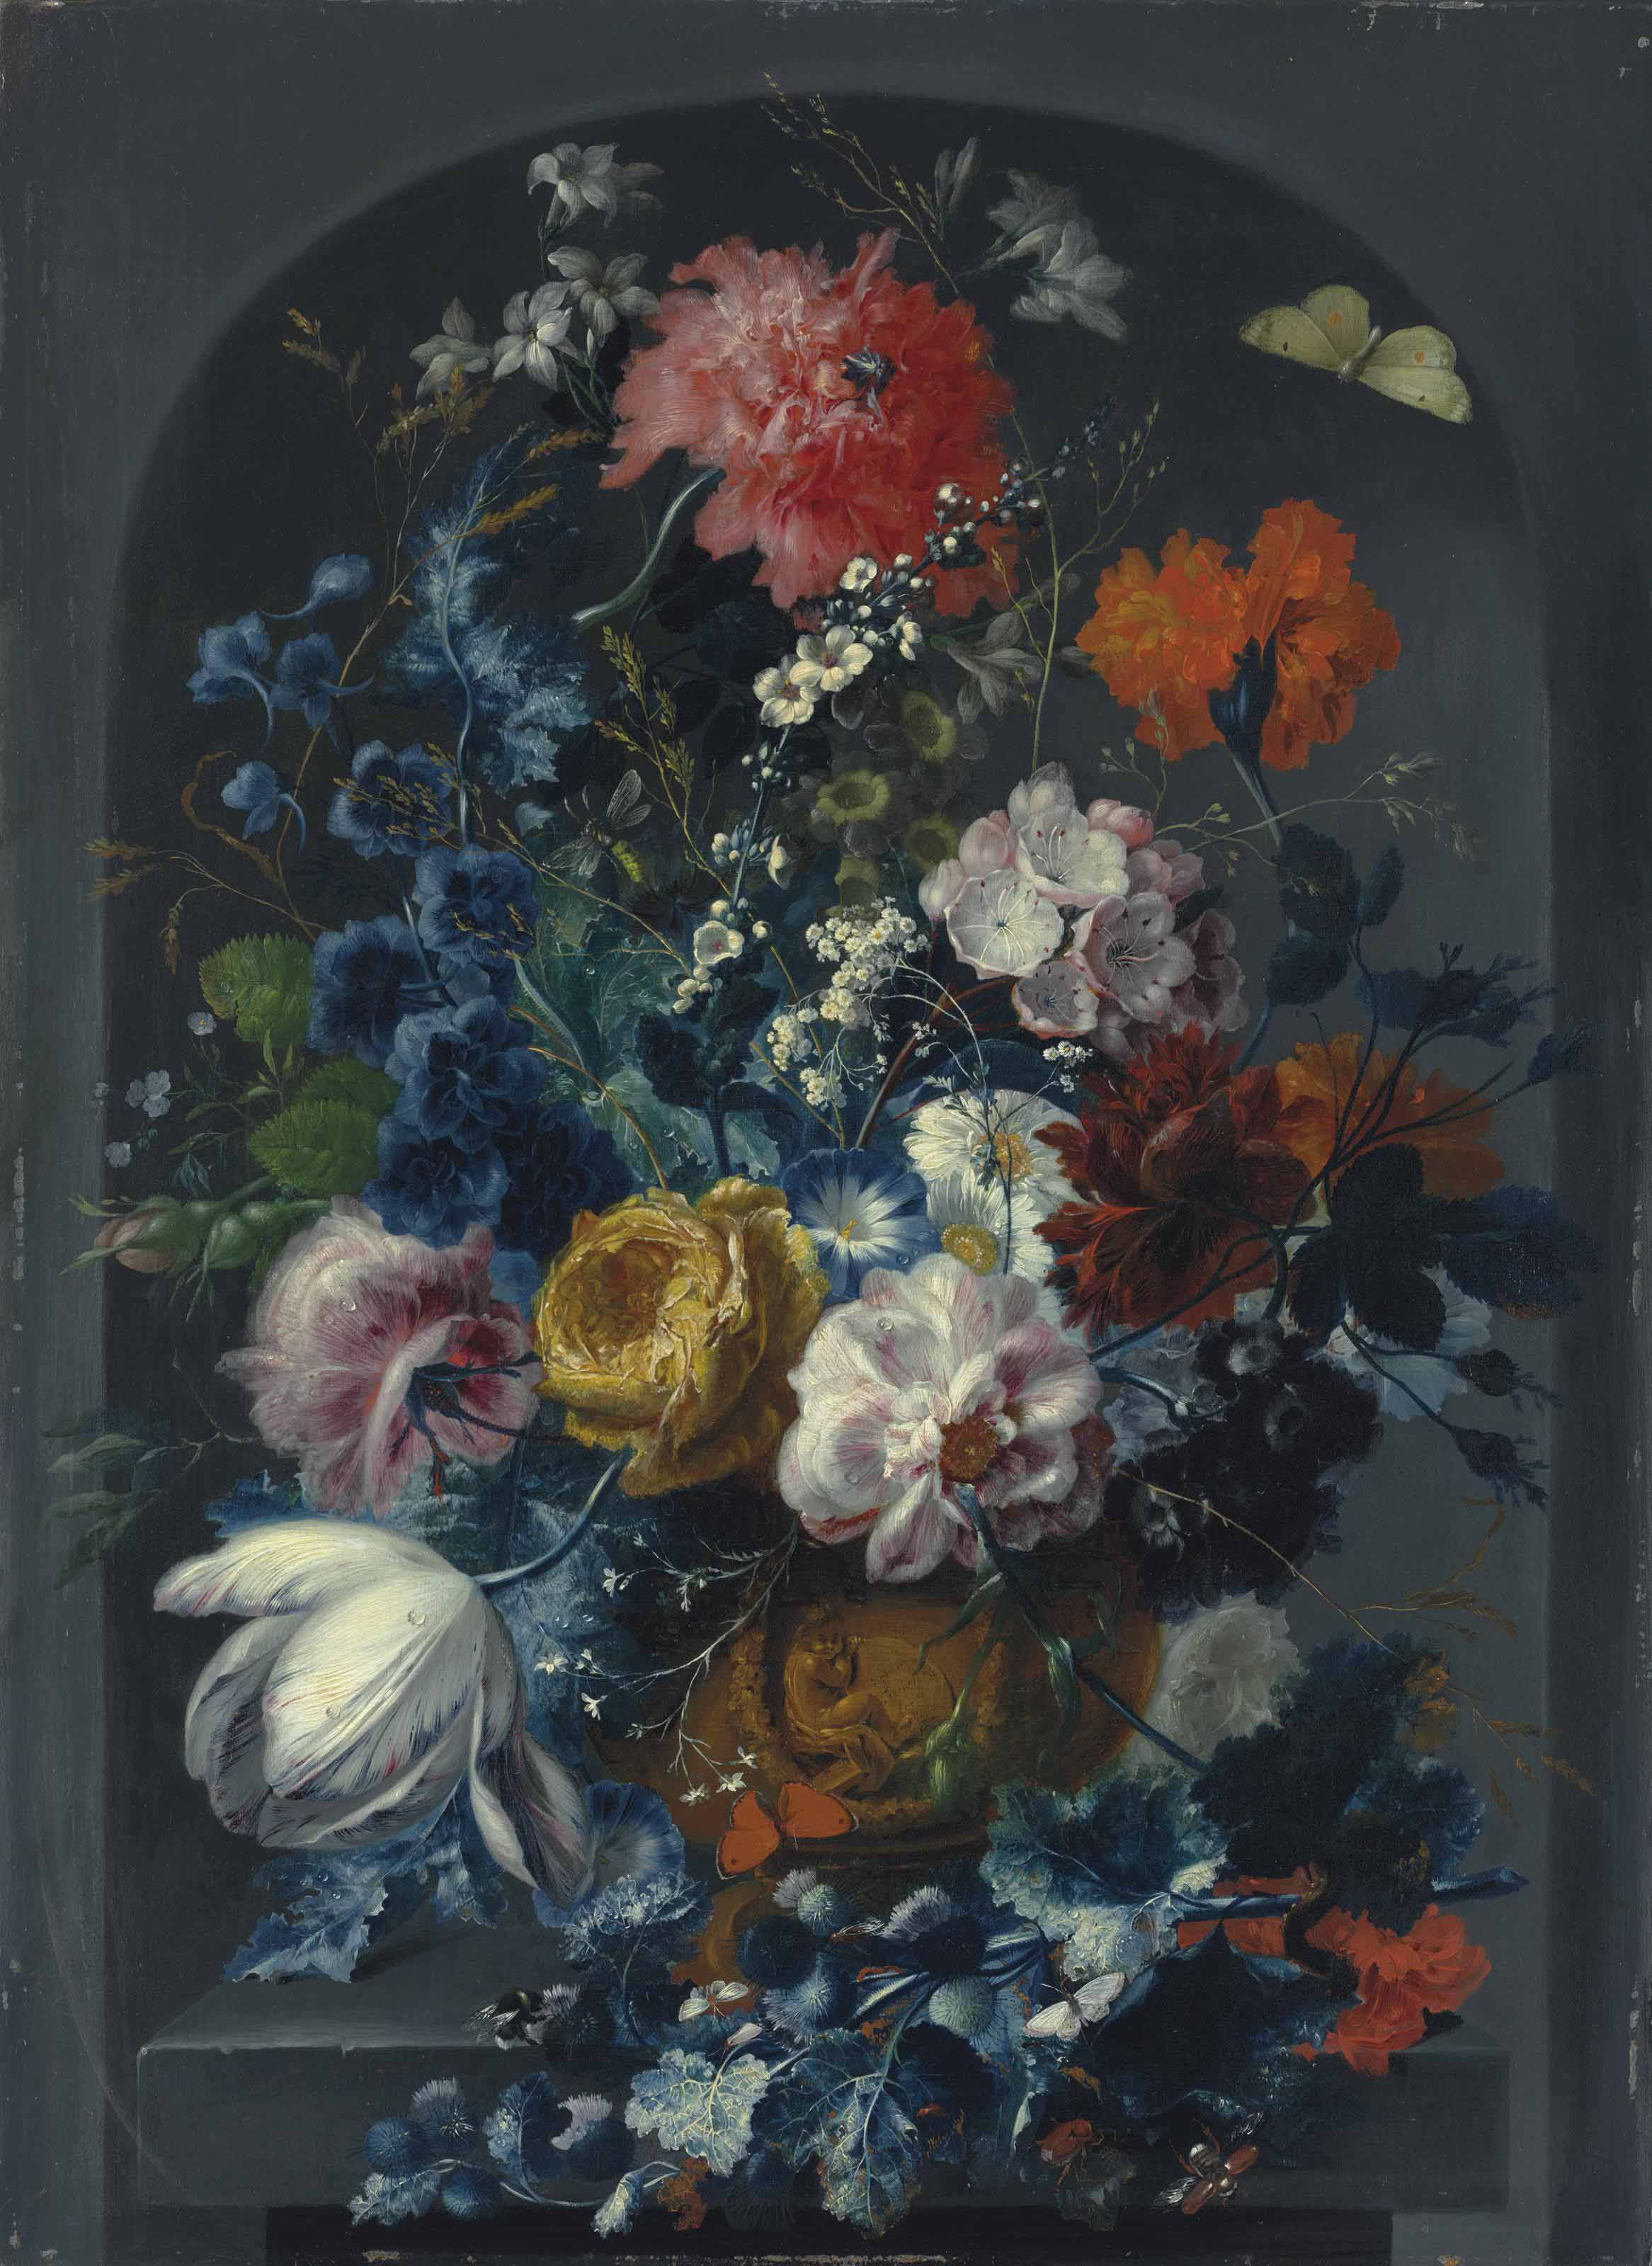 Carnations, roses, jasmine, a tulip and other flowers in a sculpted bronze urn, with butterflies, dragonflies, a caterpillar, a beetle and a bee, on a ledge in a niche